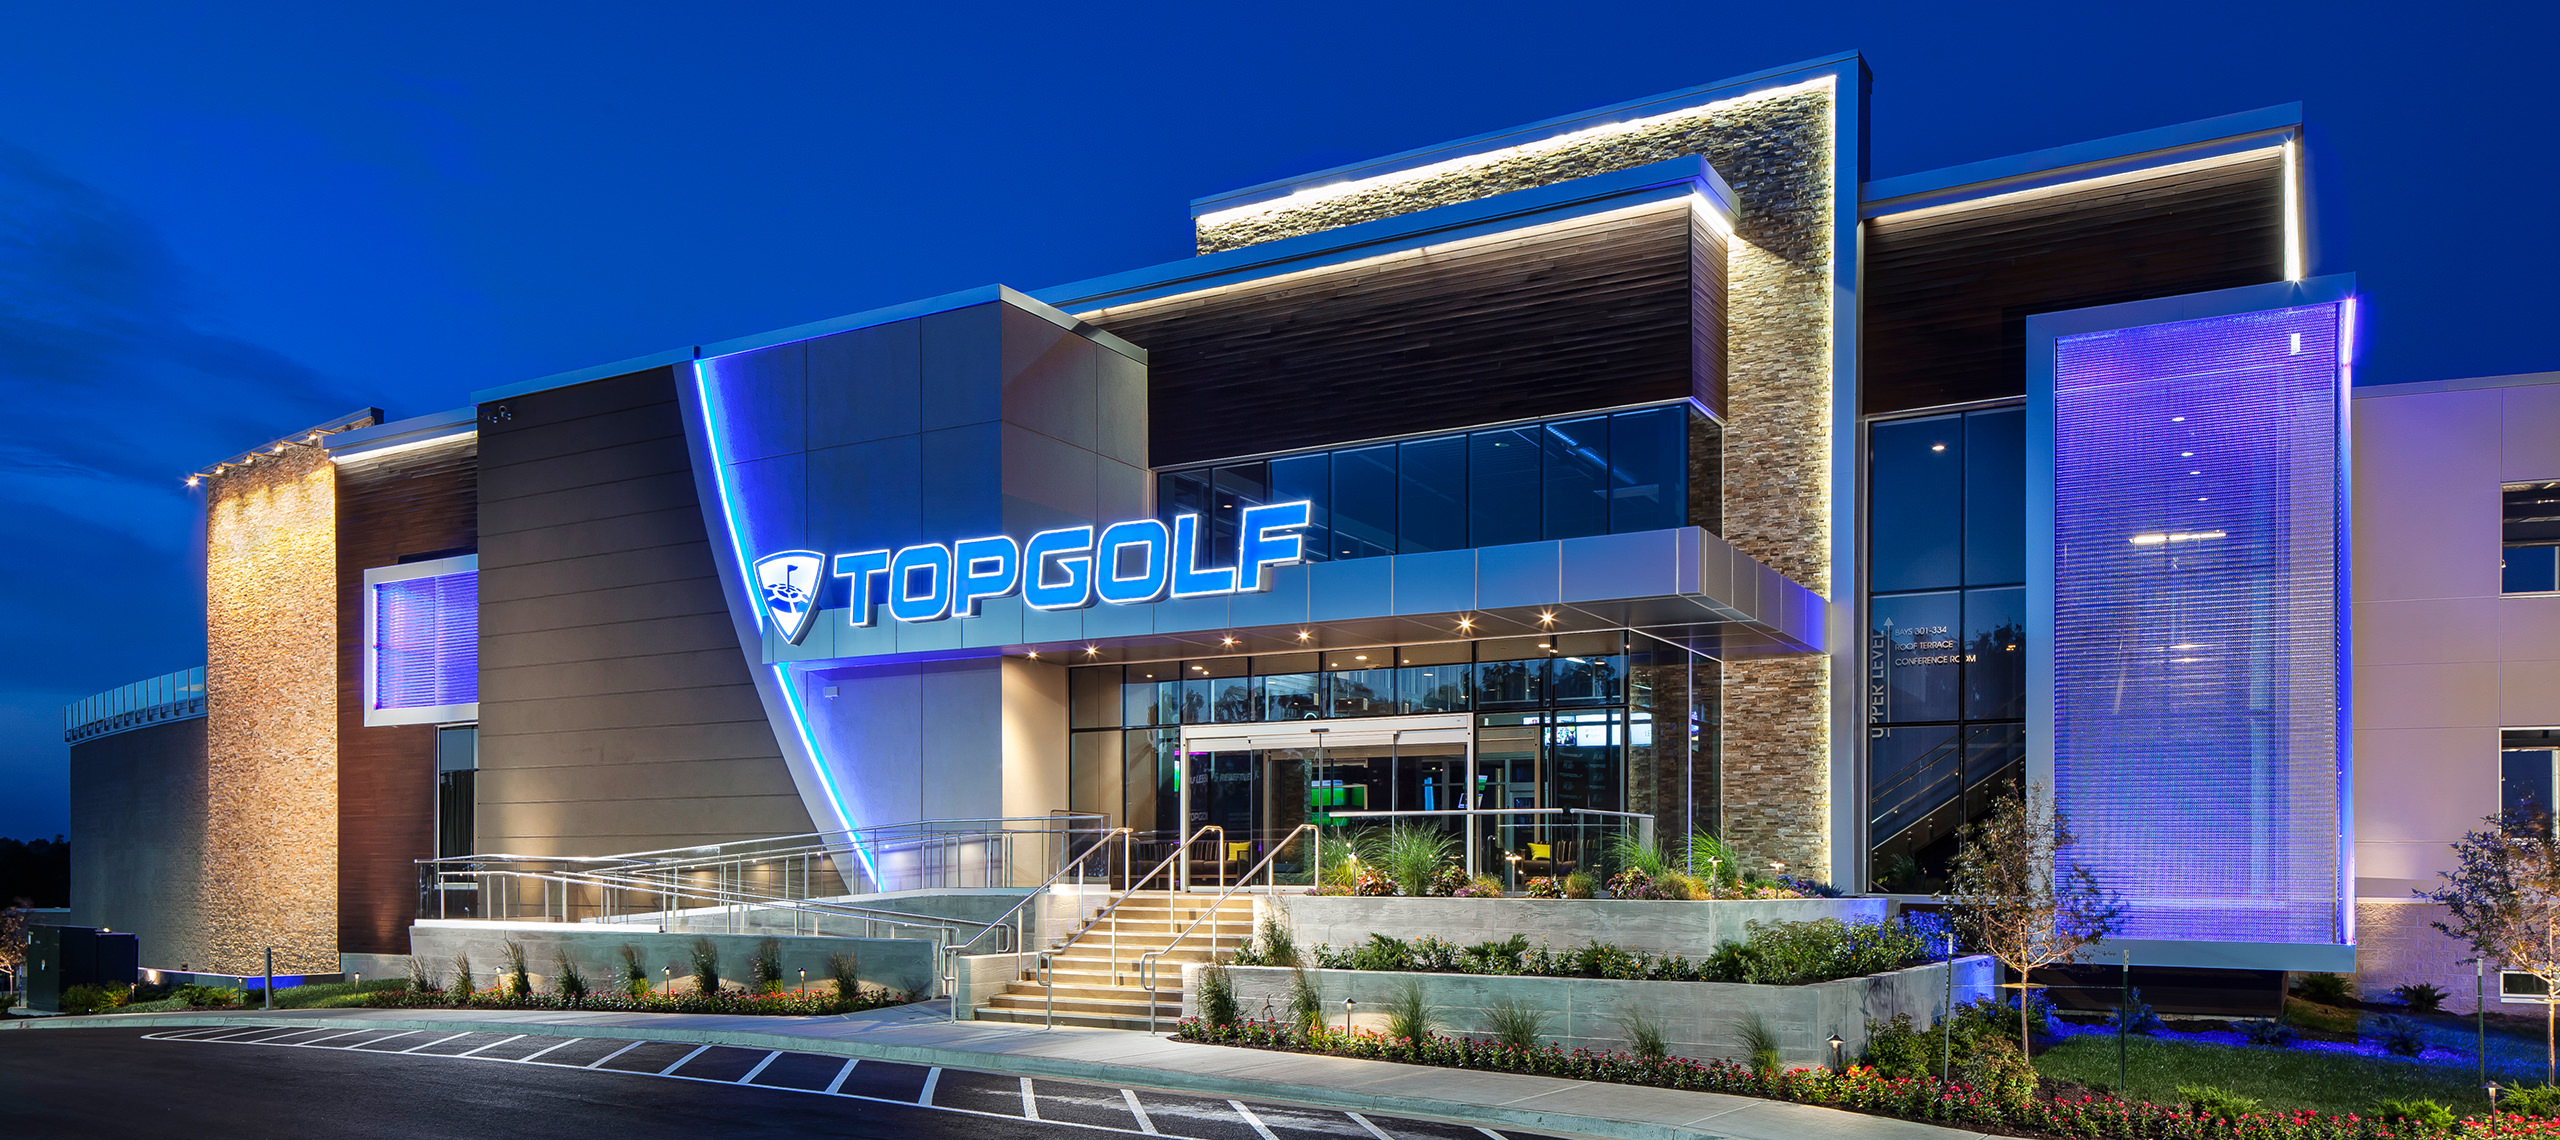 GOLF ENTERTAINMENT COMPLEX - TOPGOLF / OVERLAND PARK, KS